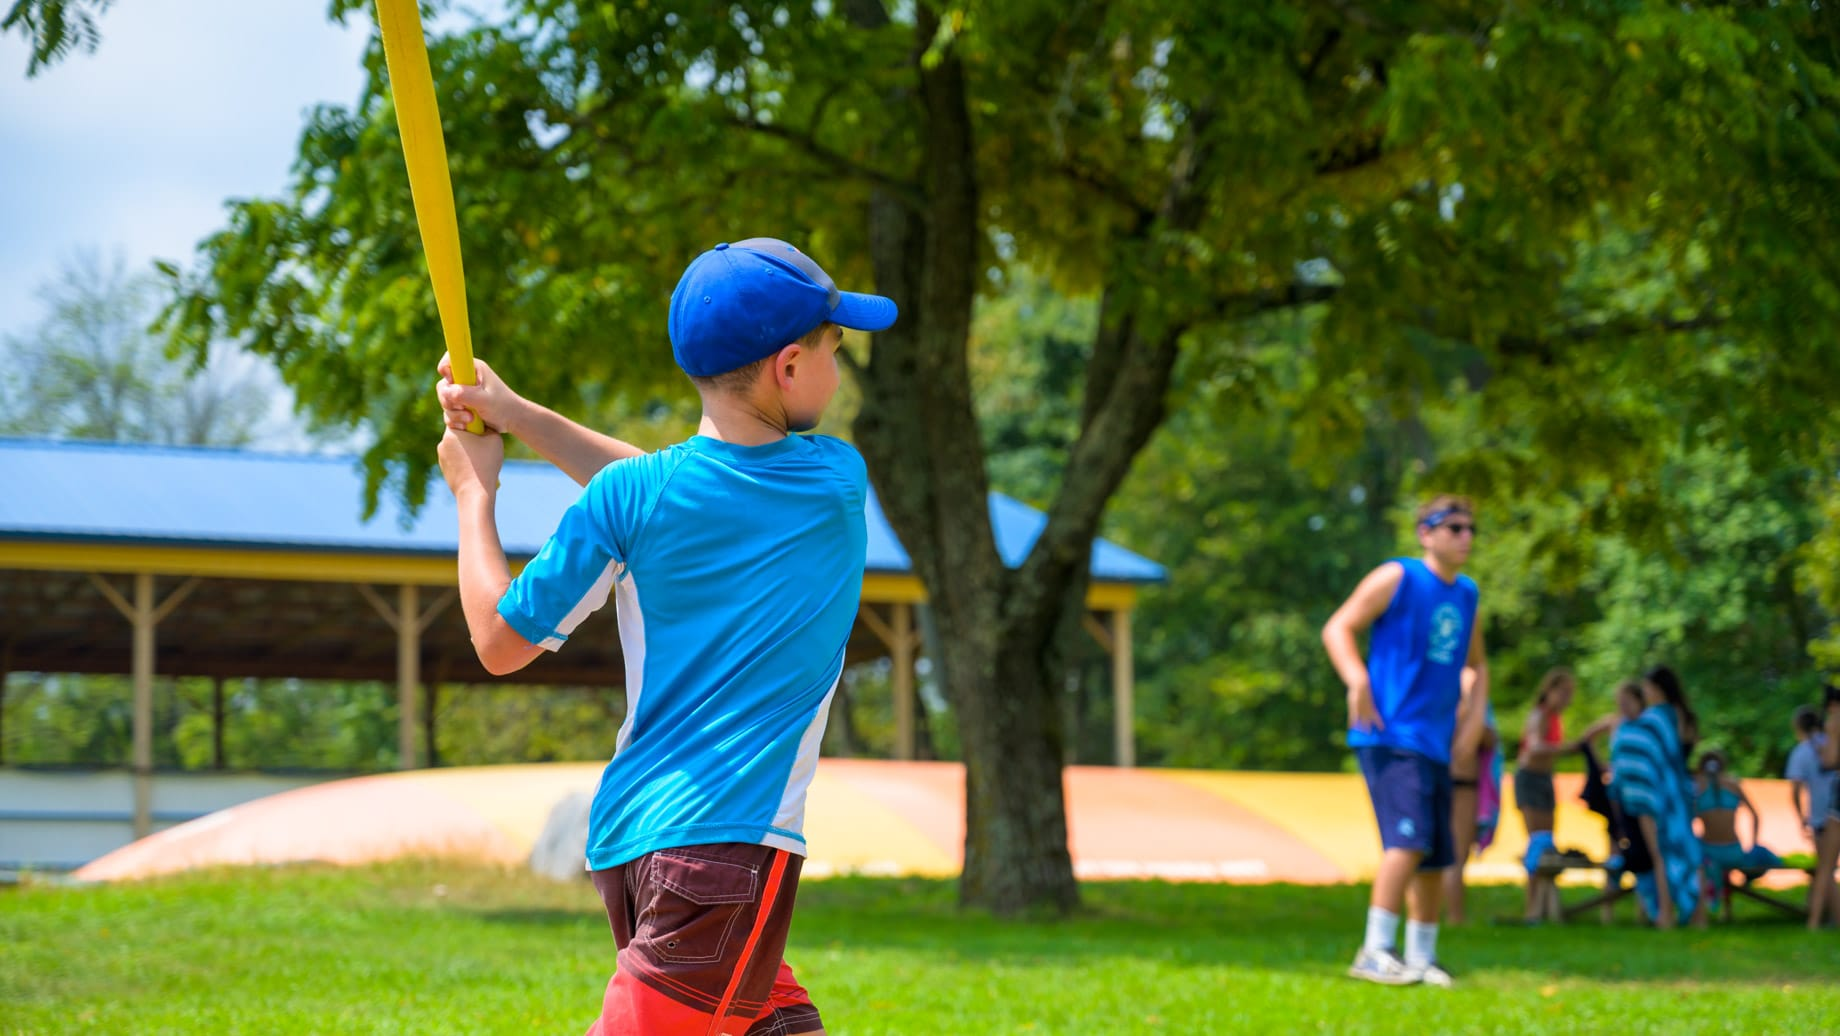 Camper hitting baseball bat